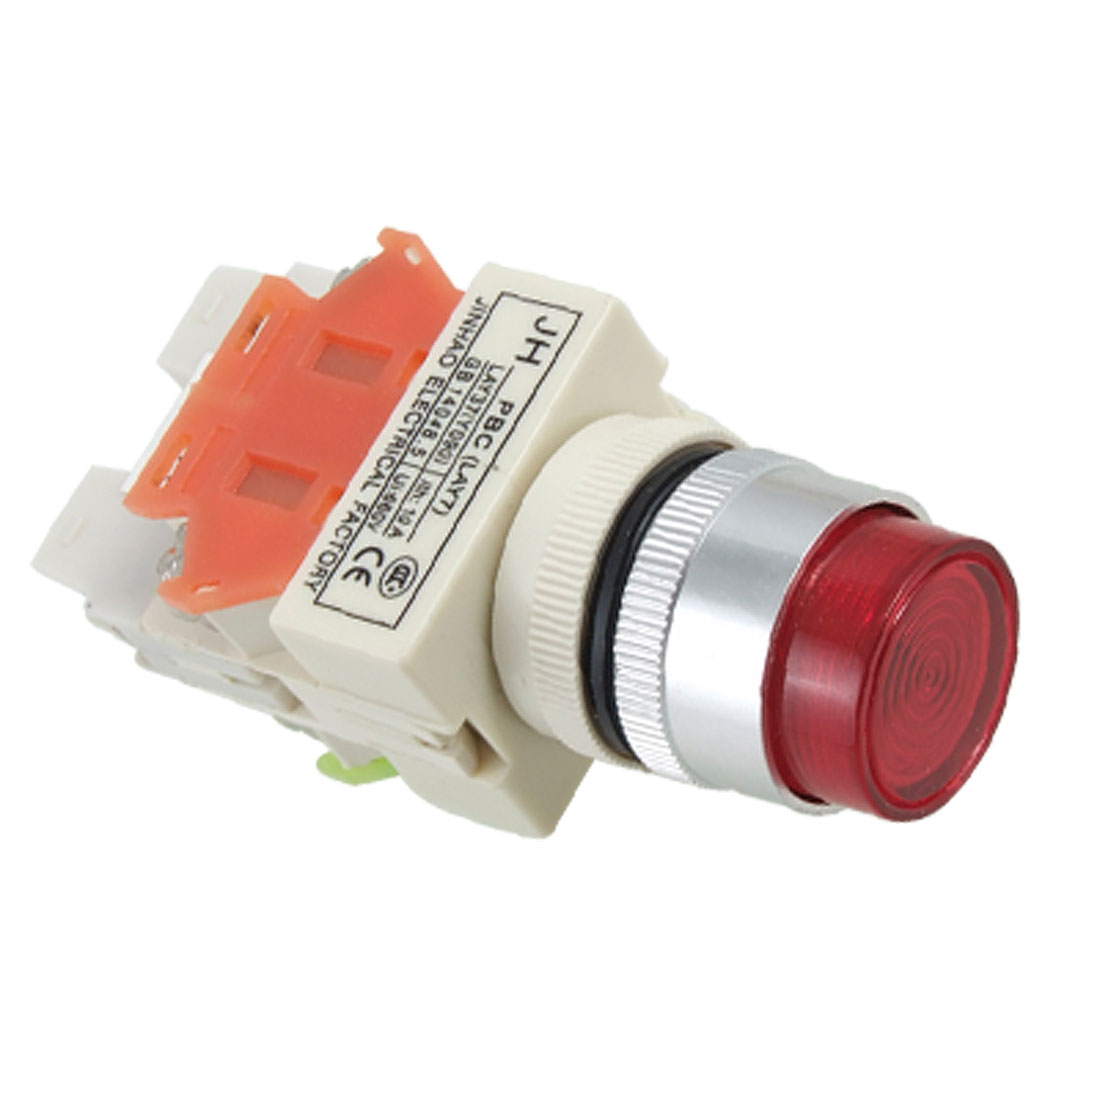 220V Light Lamp Red Sign Momentary Push Button Switch 1 NO N/O 1 NC N/C 10A 660V